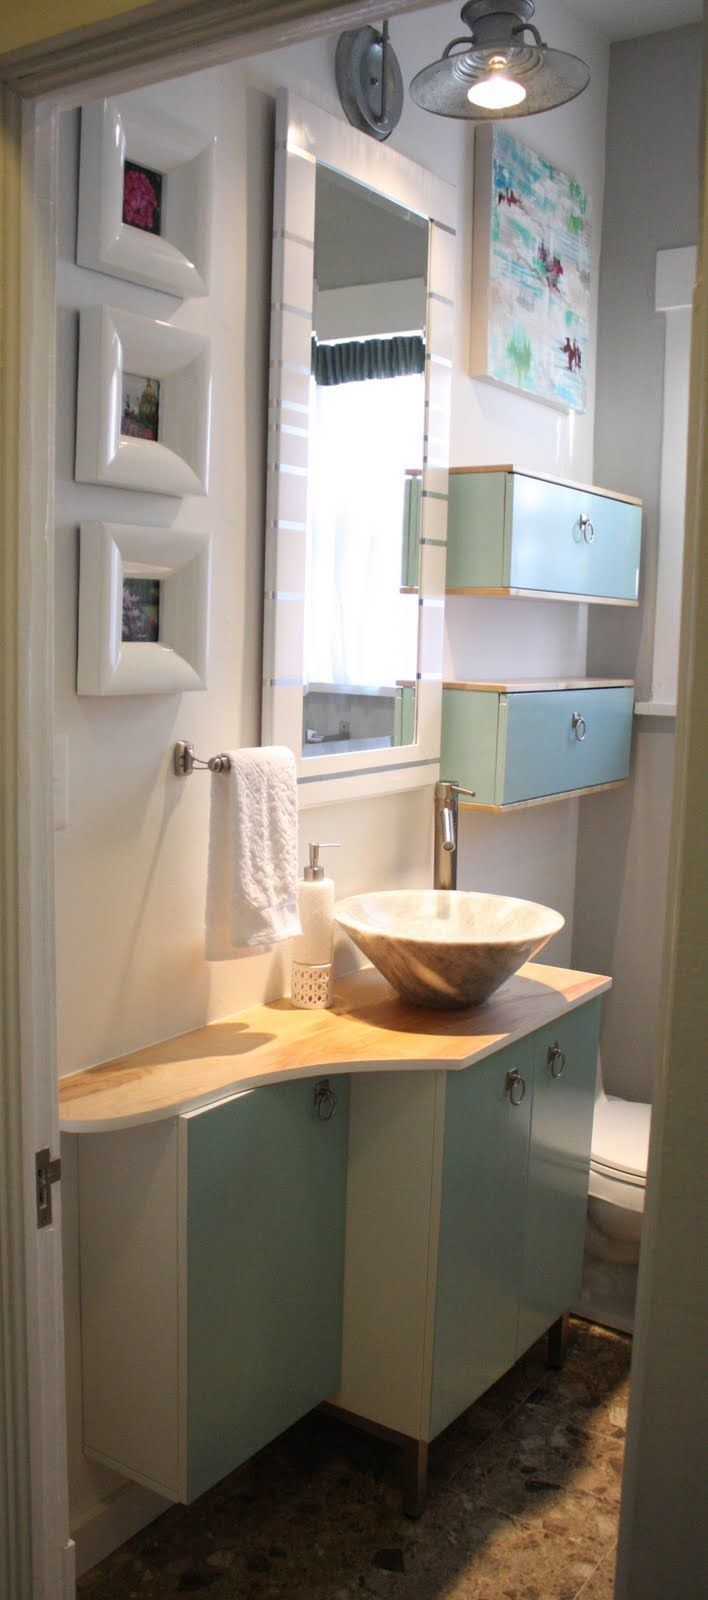 8 adorable clever tips bathroom remodel stone cabinets